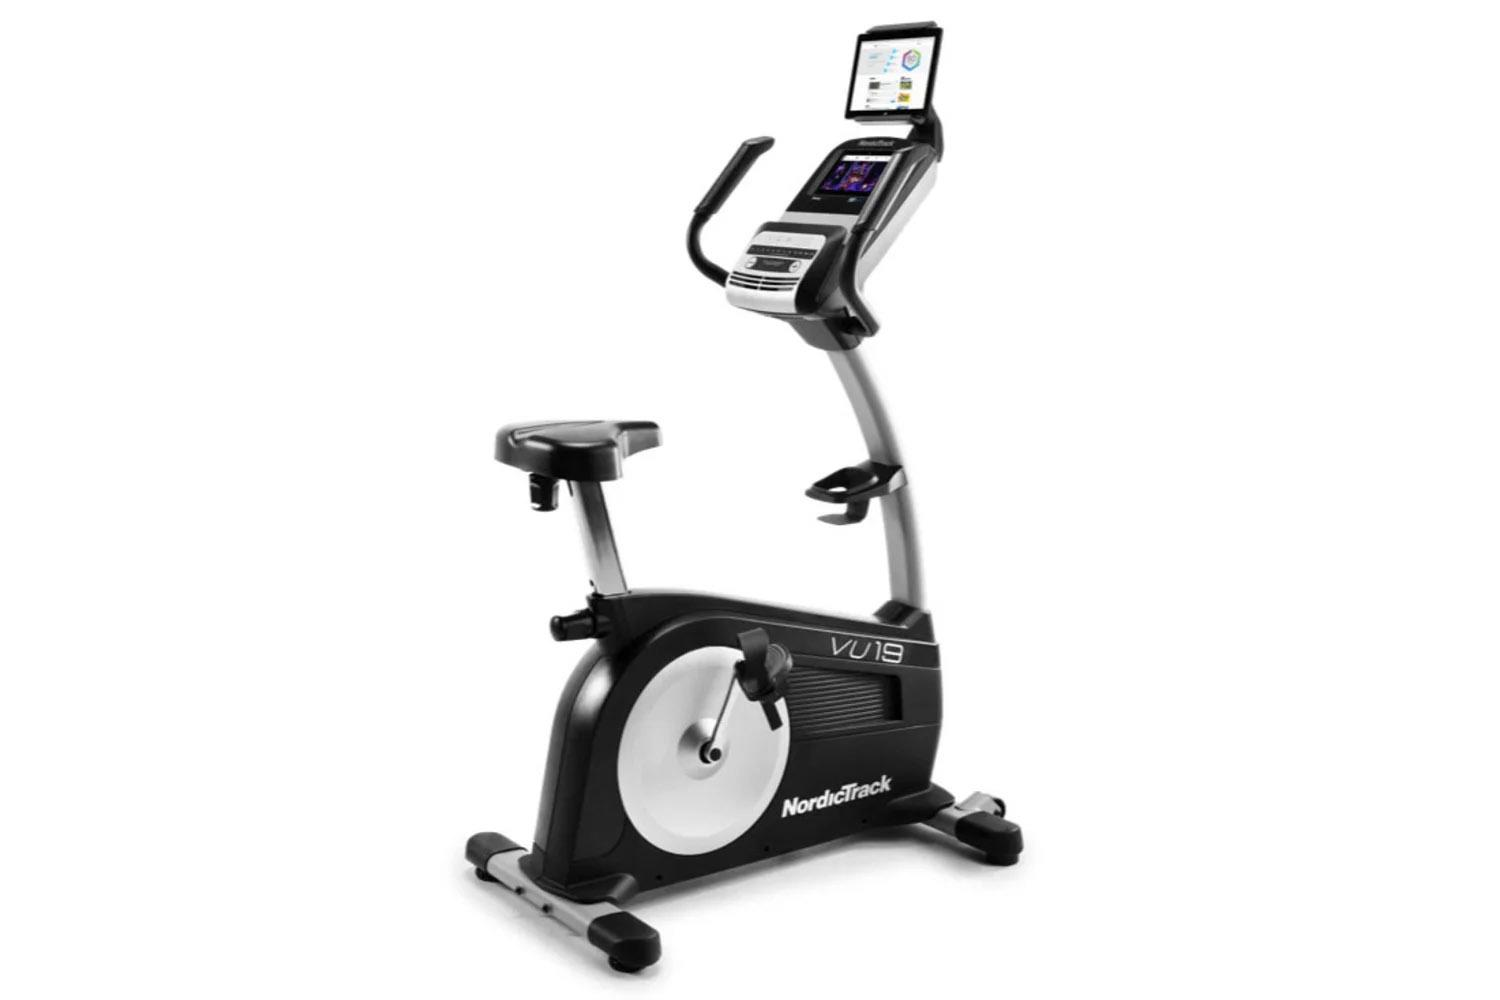 Nordictrack Commercial Vu19 Review Exercisebike